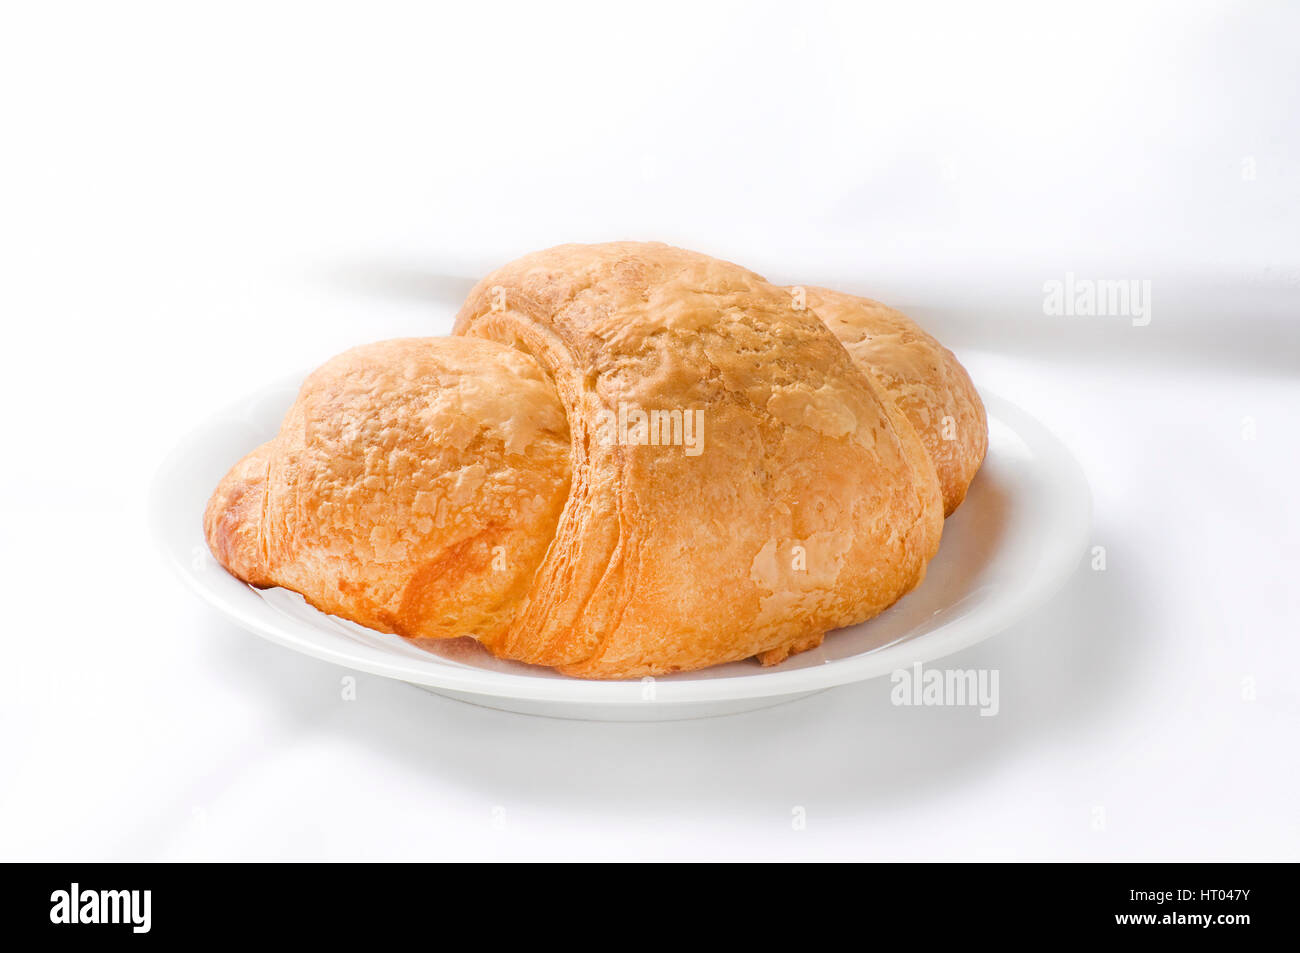 croissant on small plate o white background - Stock Image